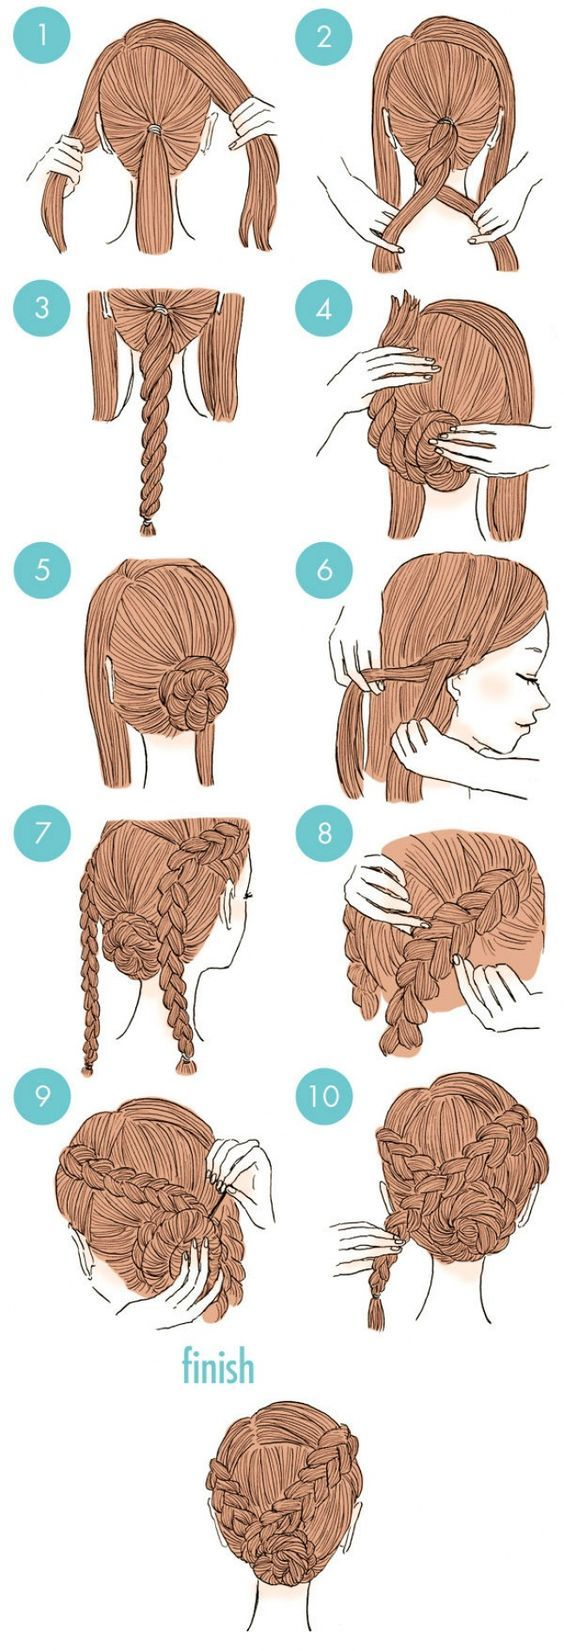 65 Easy And Cute Hairstyles That Can Be Done In Just A Few Minutes Cute Simple Hairstyles Cute Quick Hairstyles Long Hair Styles